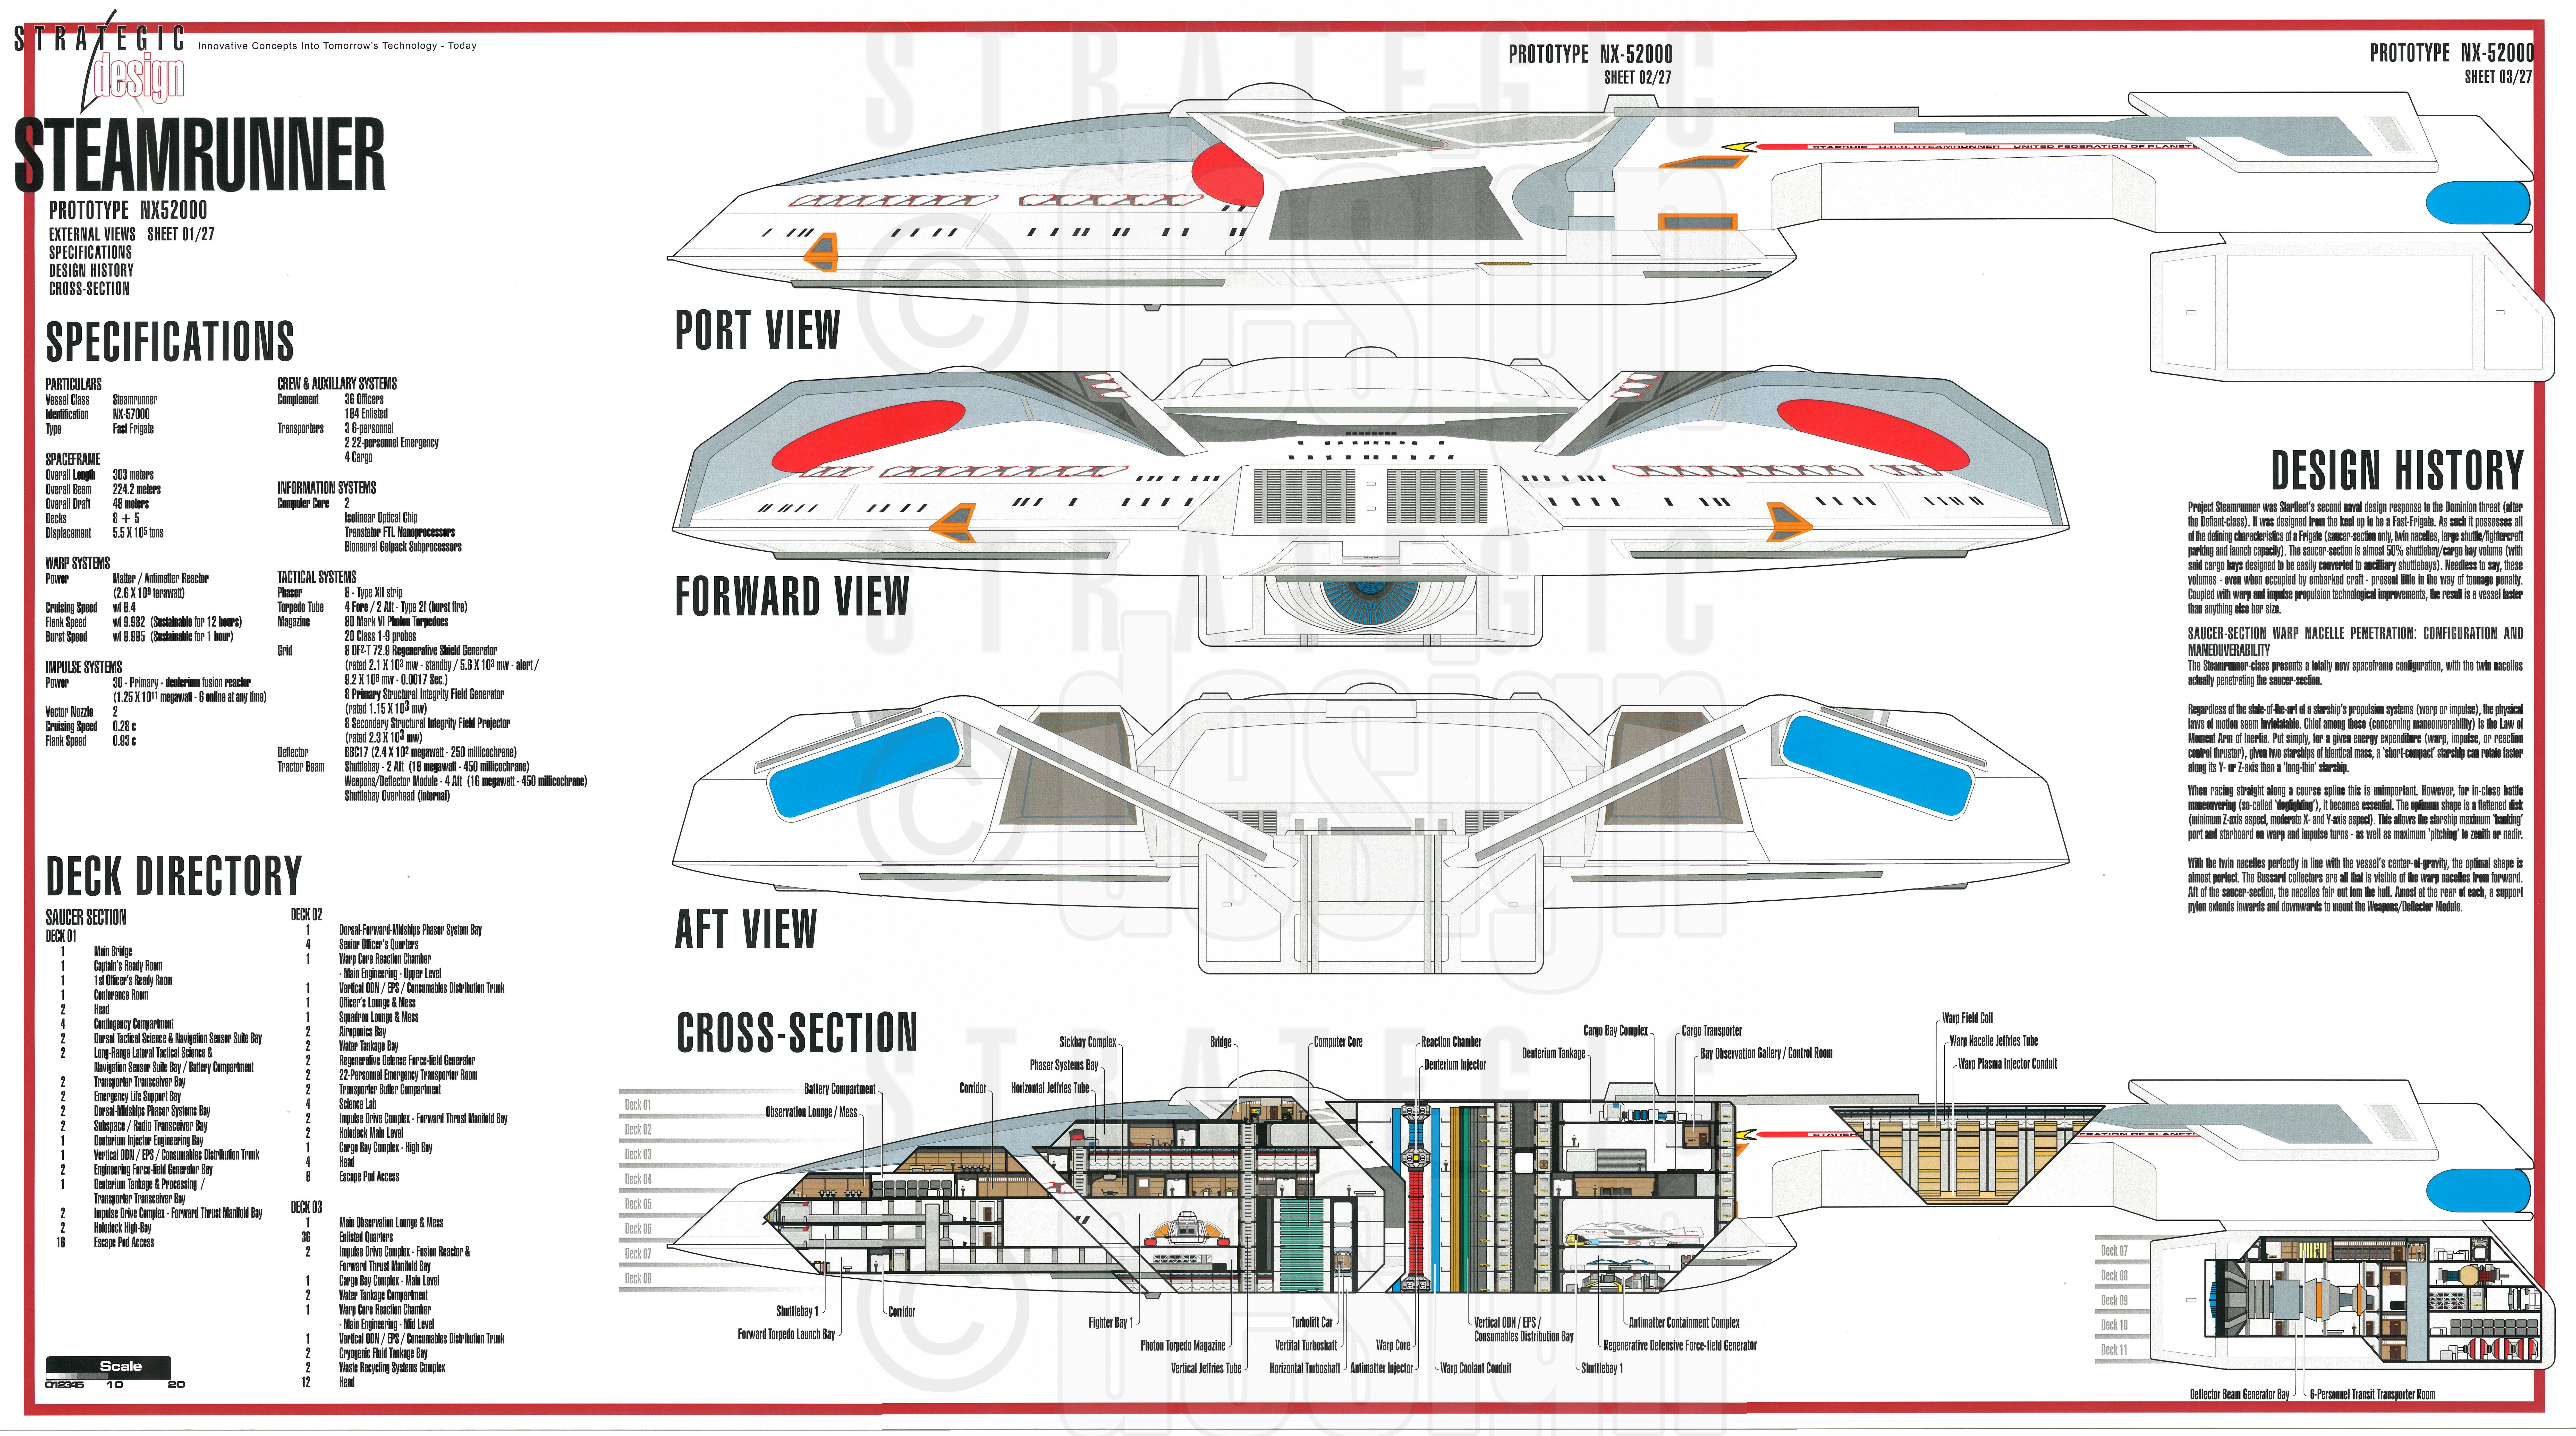 Star trek blueprints steamrunner class starship prototype nx 52000 sheets 1 3 port view forward view aft view cross section specifications deck directory design history malvernweather Images